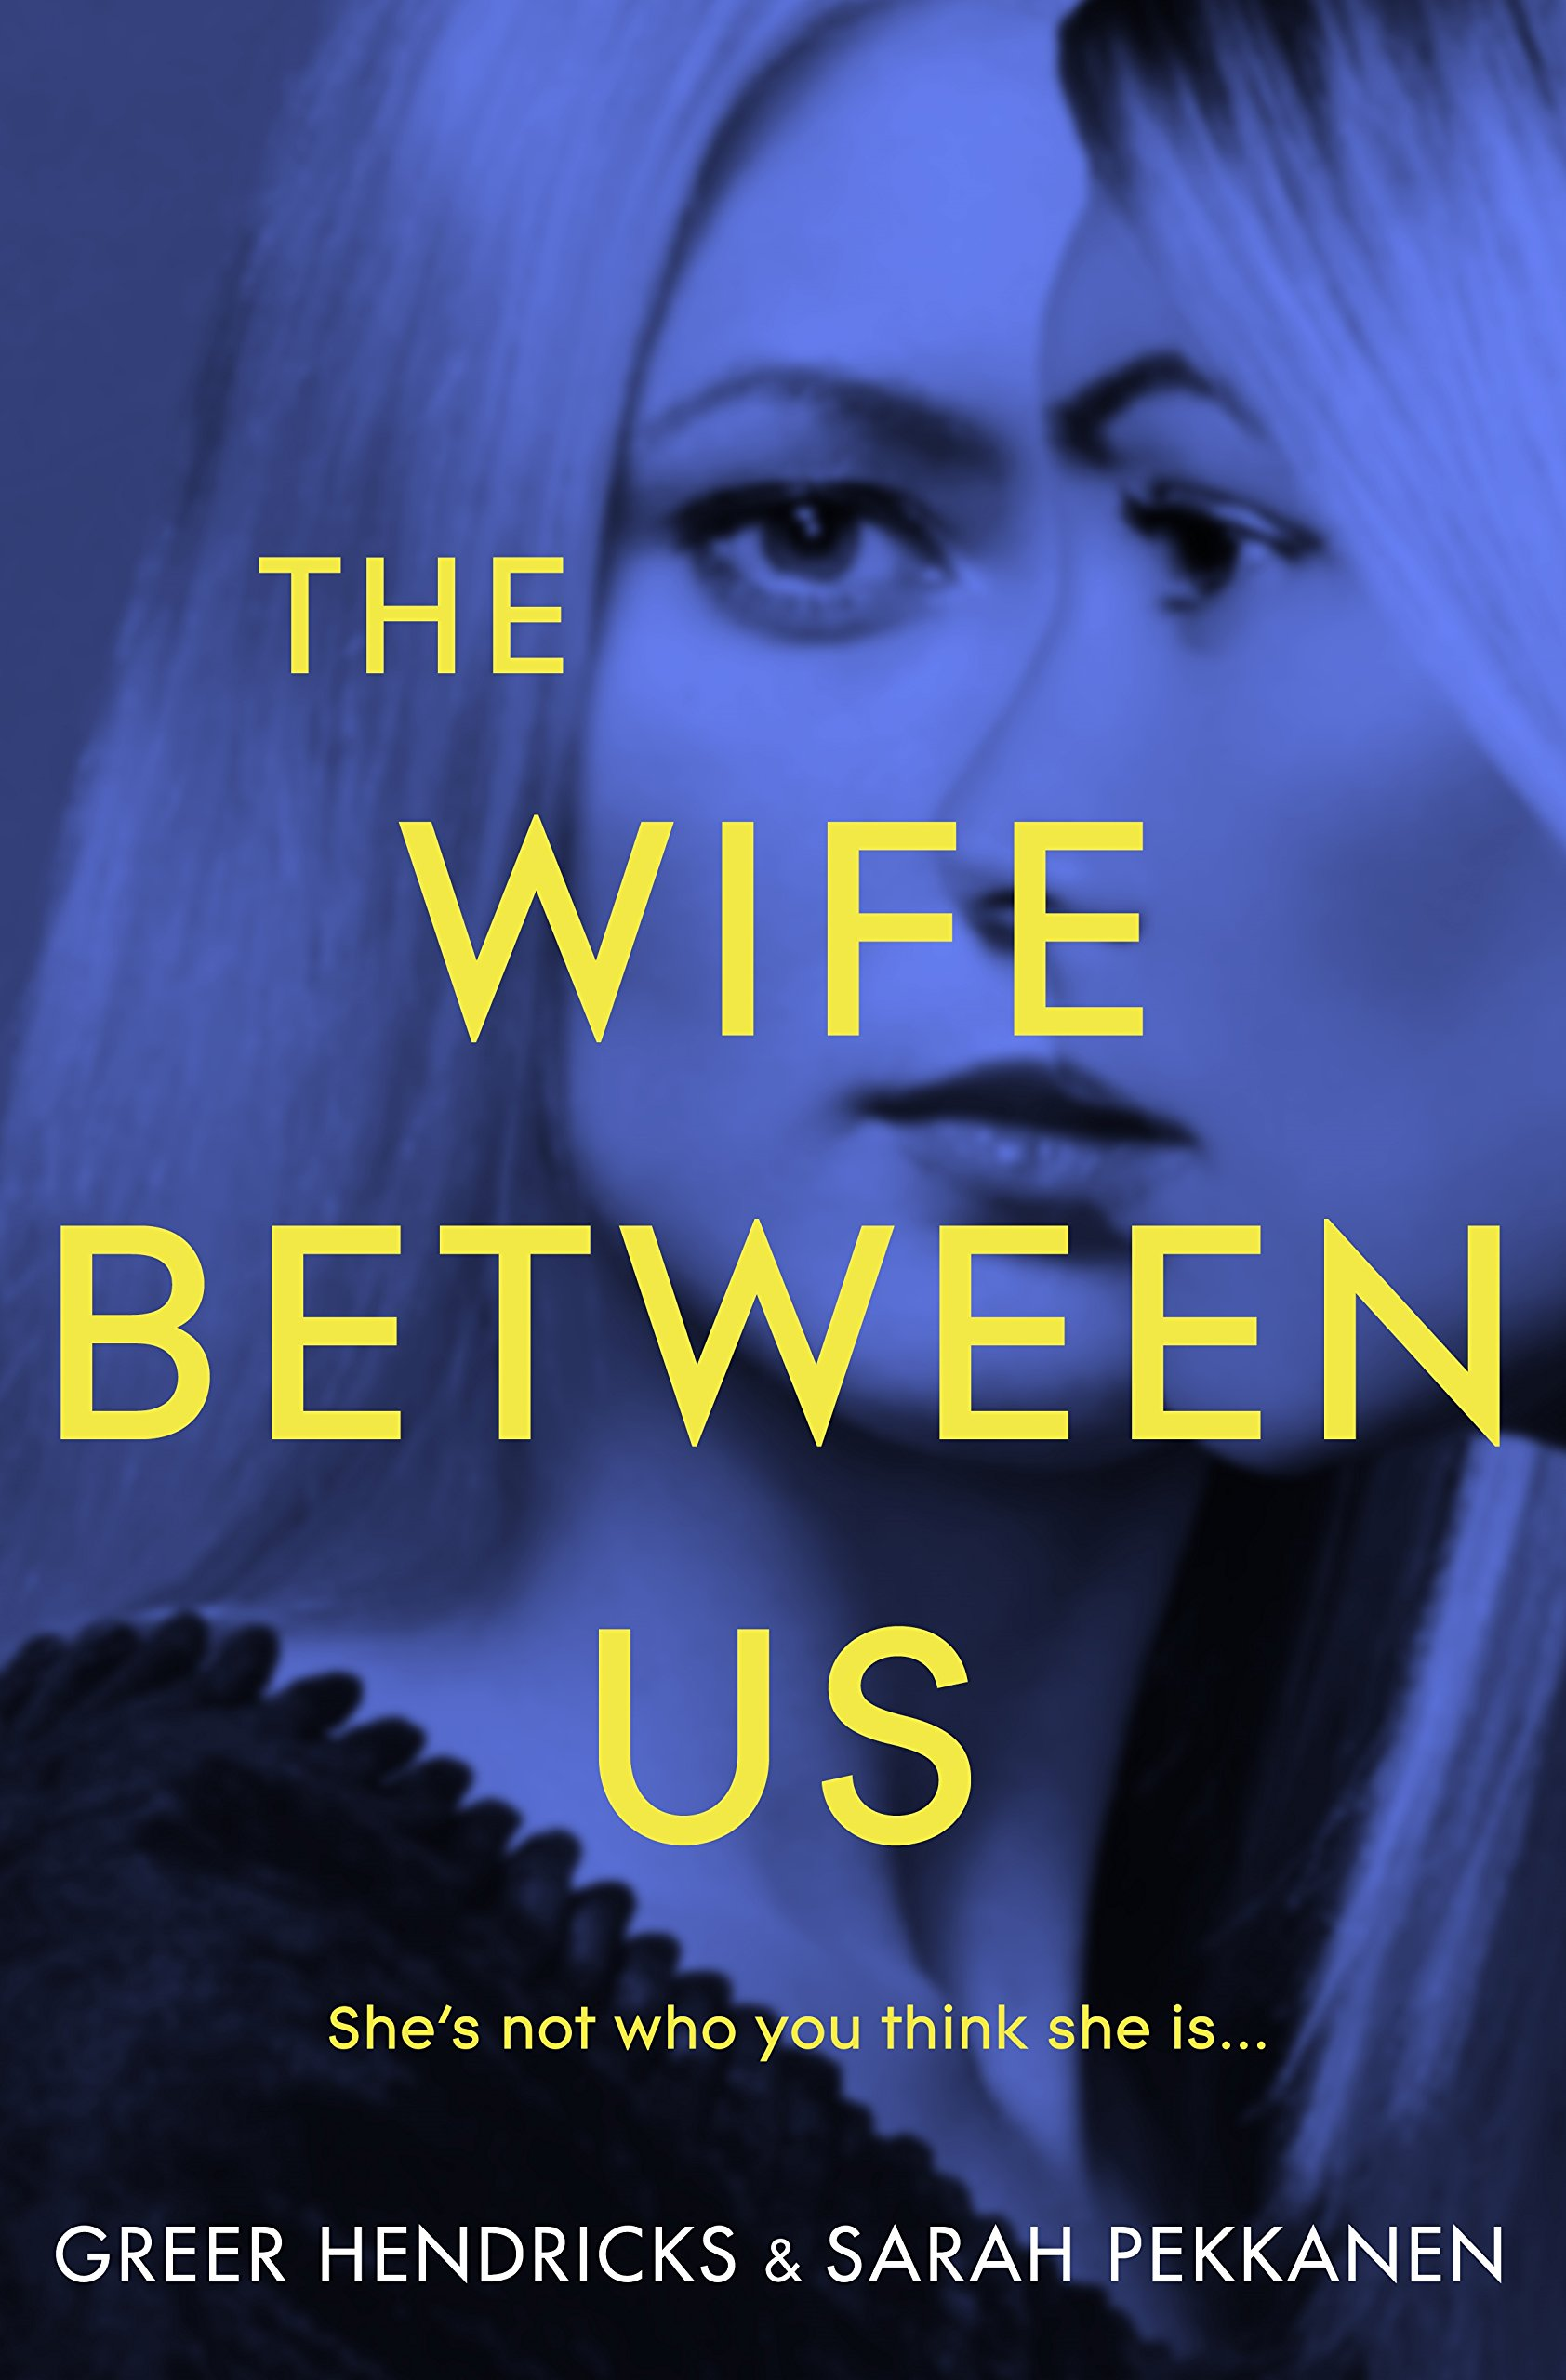 Buy The Wife Between Us (My First Touch and Find) Book Online at Low Prices  in India | The Wife Between Us (My First Touch and Find) Reviews & Ratings  - Amazon.in